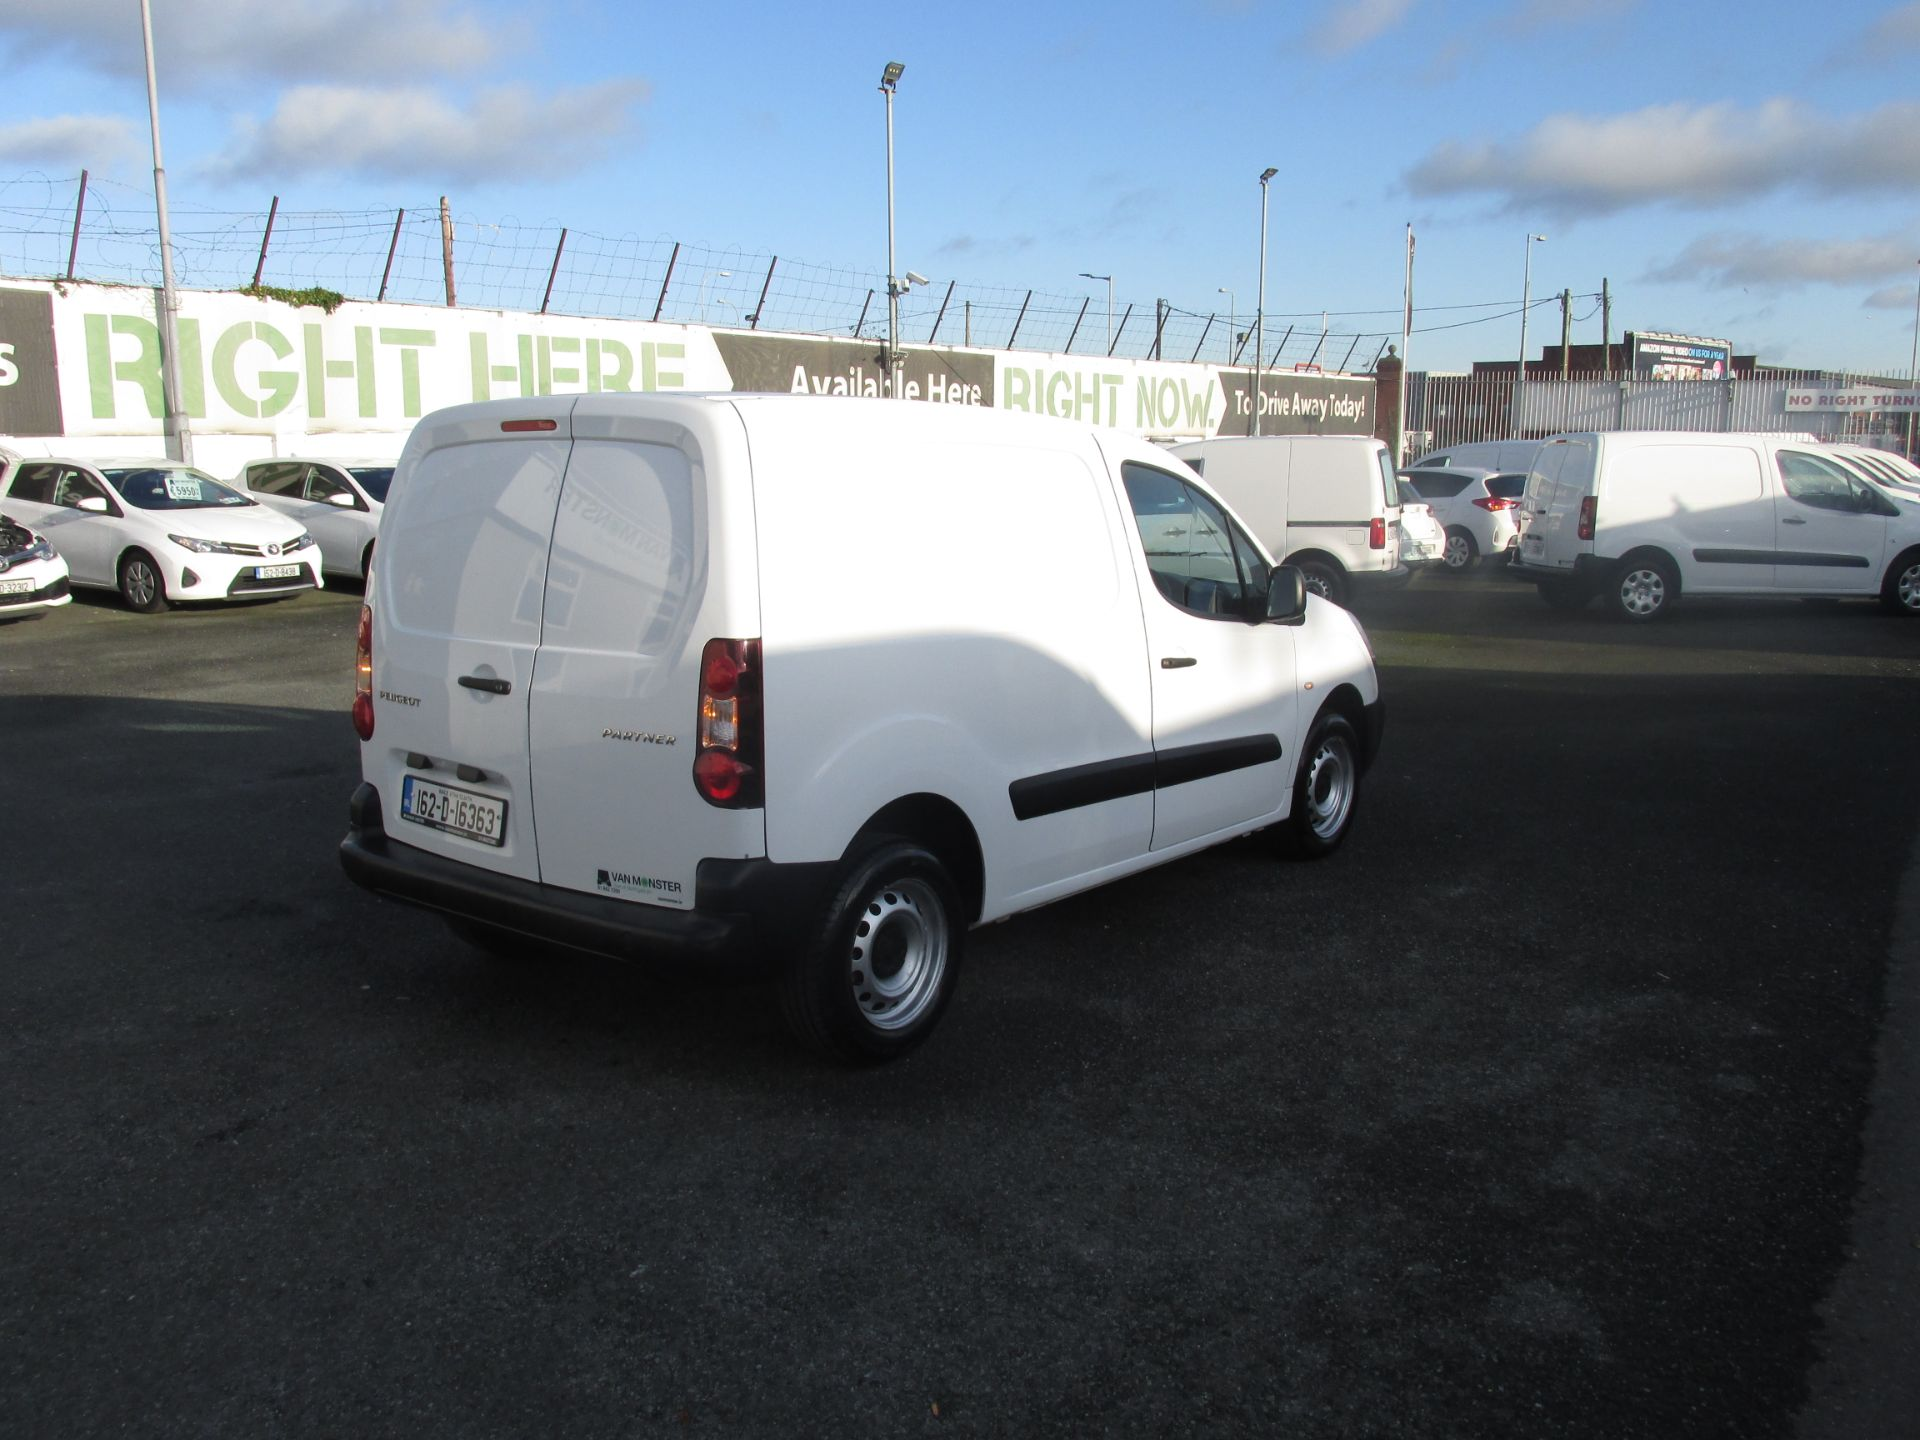 2016 Peugeot Partner #150 VANS TO VIEW IN SANTRY # (162D16363) Image 7